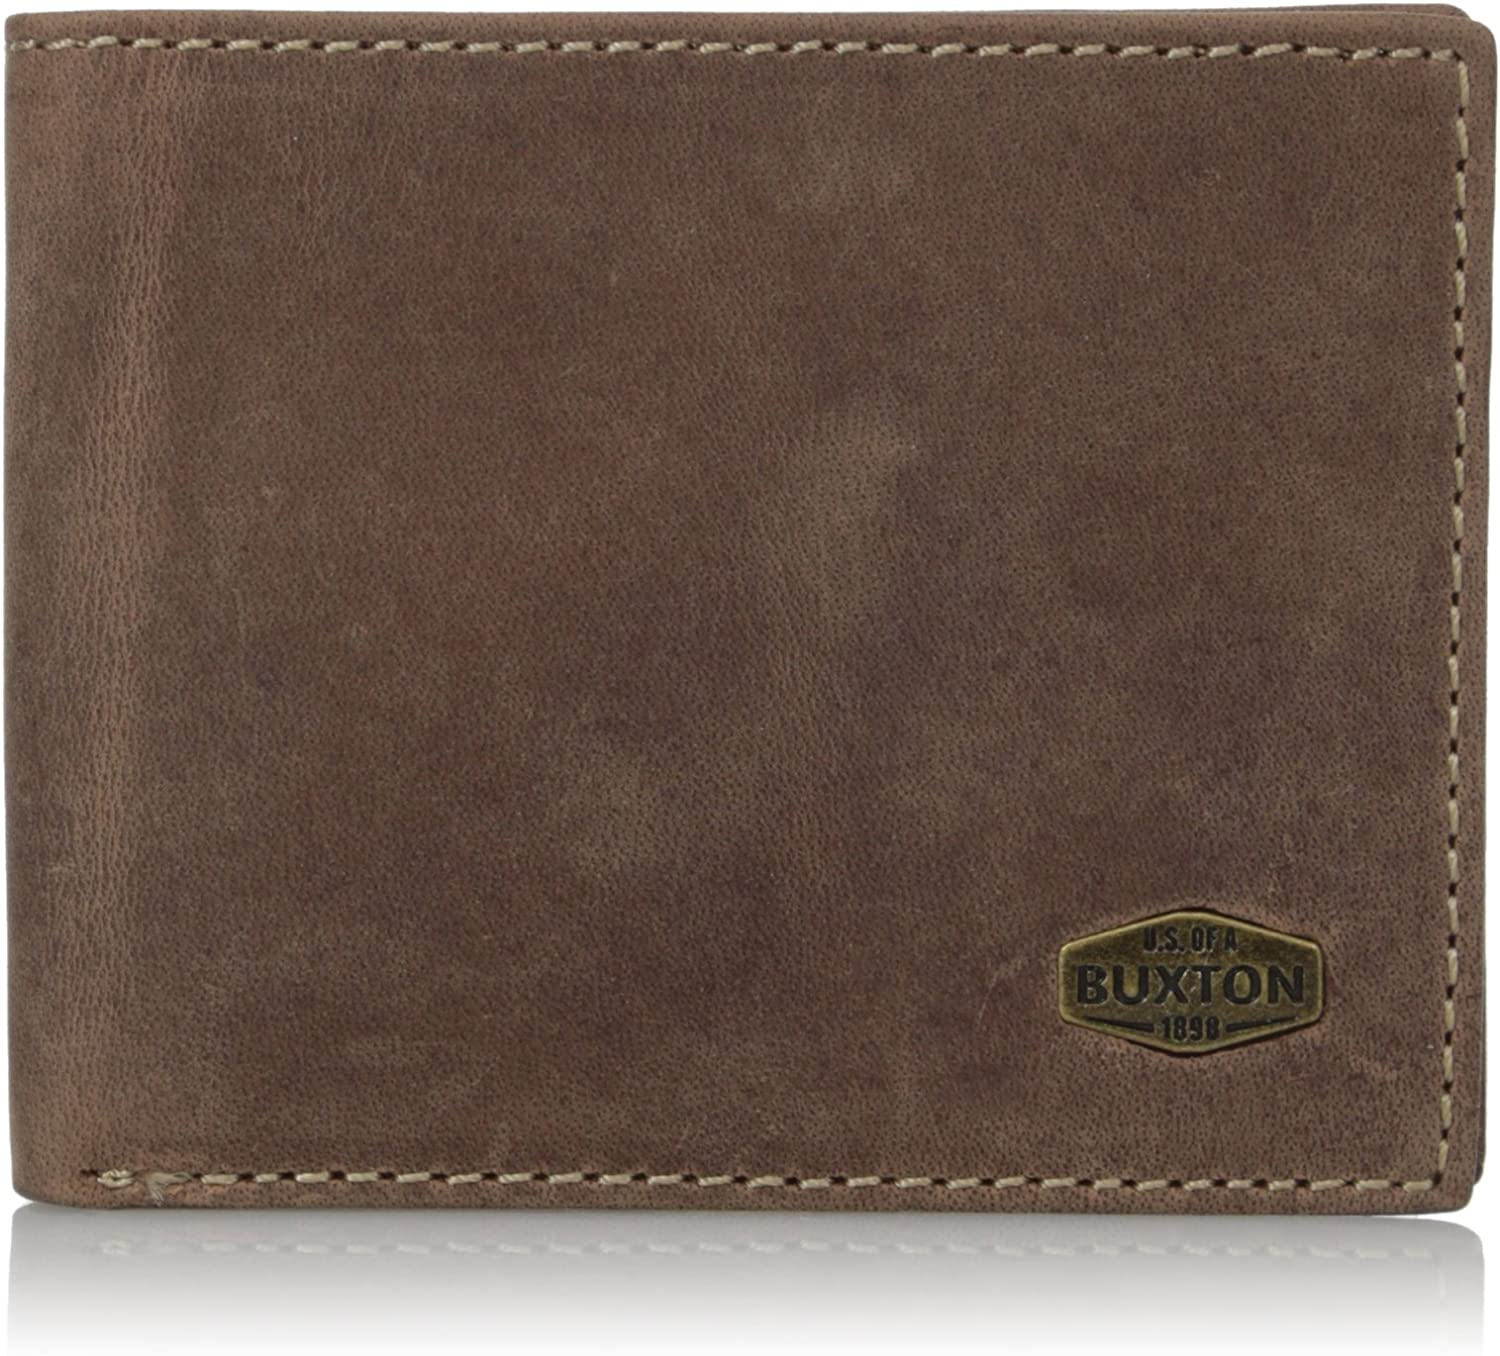 Buxton Men's Expedition RFID Blocking Leather Slim Wallet